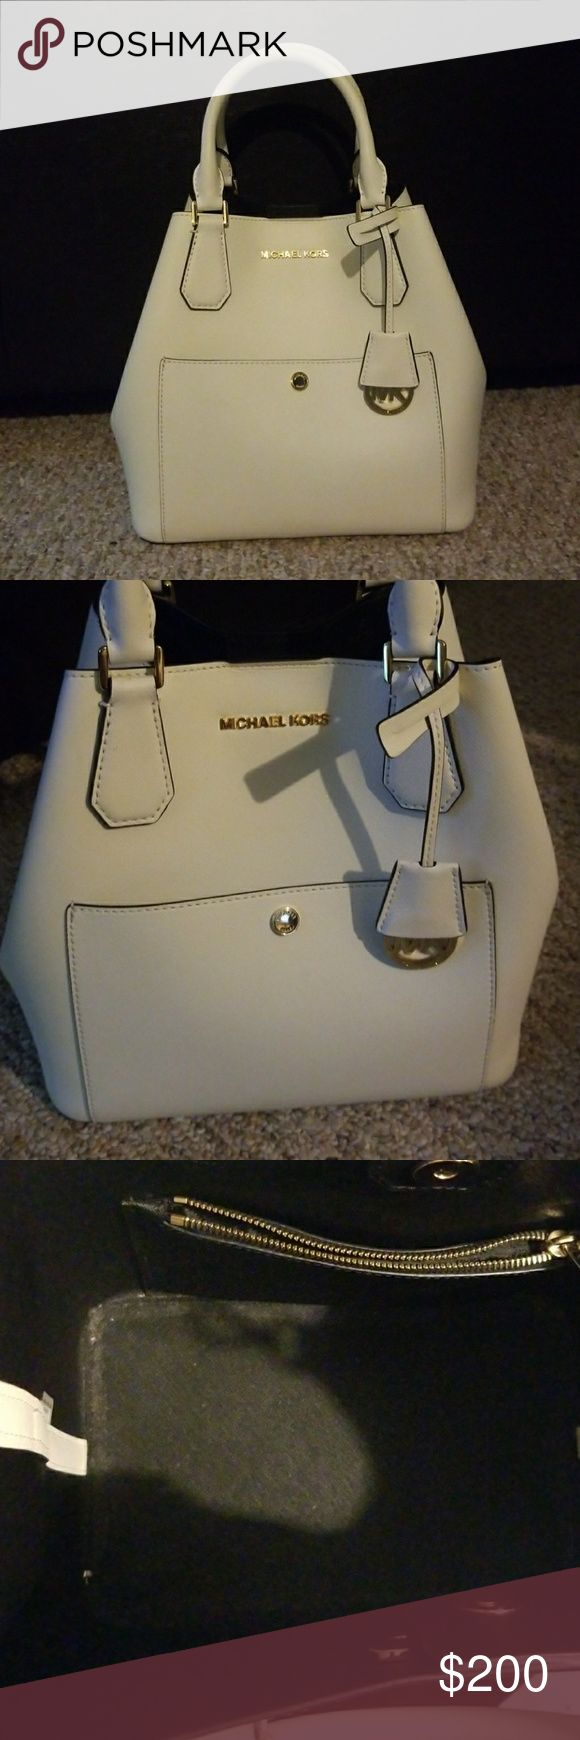 White greenwich Michael Kors bag Greenwich  large saffiano leather satchel No stains or scratches. Excellent condition. Gold hardware. 💥Make an offer 💥 price is negotiable 🚫No trades Michael Kors Bags Satchels